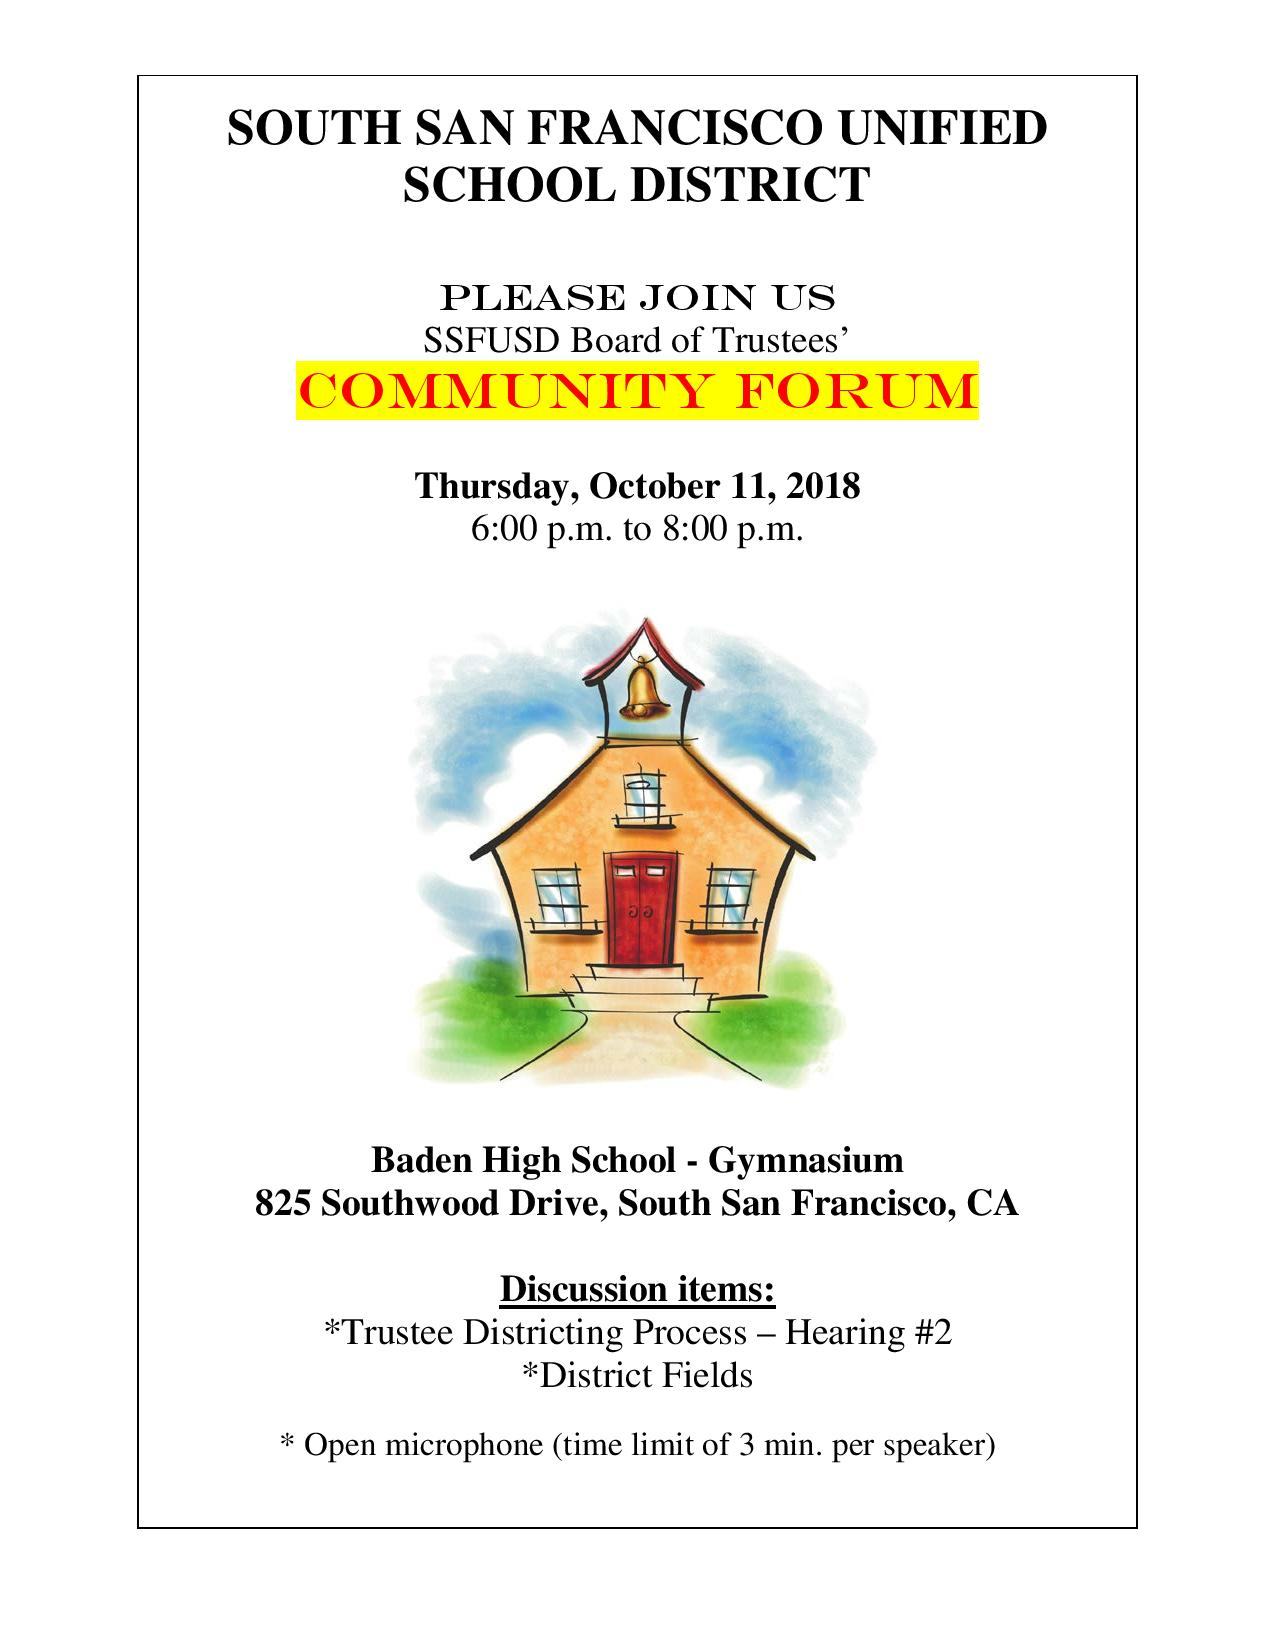 SSFUSD Board Meeting – Community Forum Set for October 11th 6p-8p